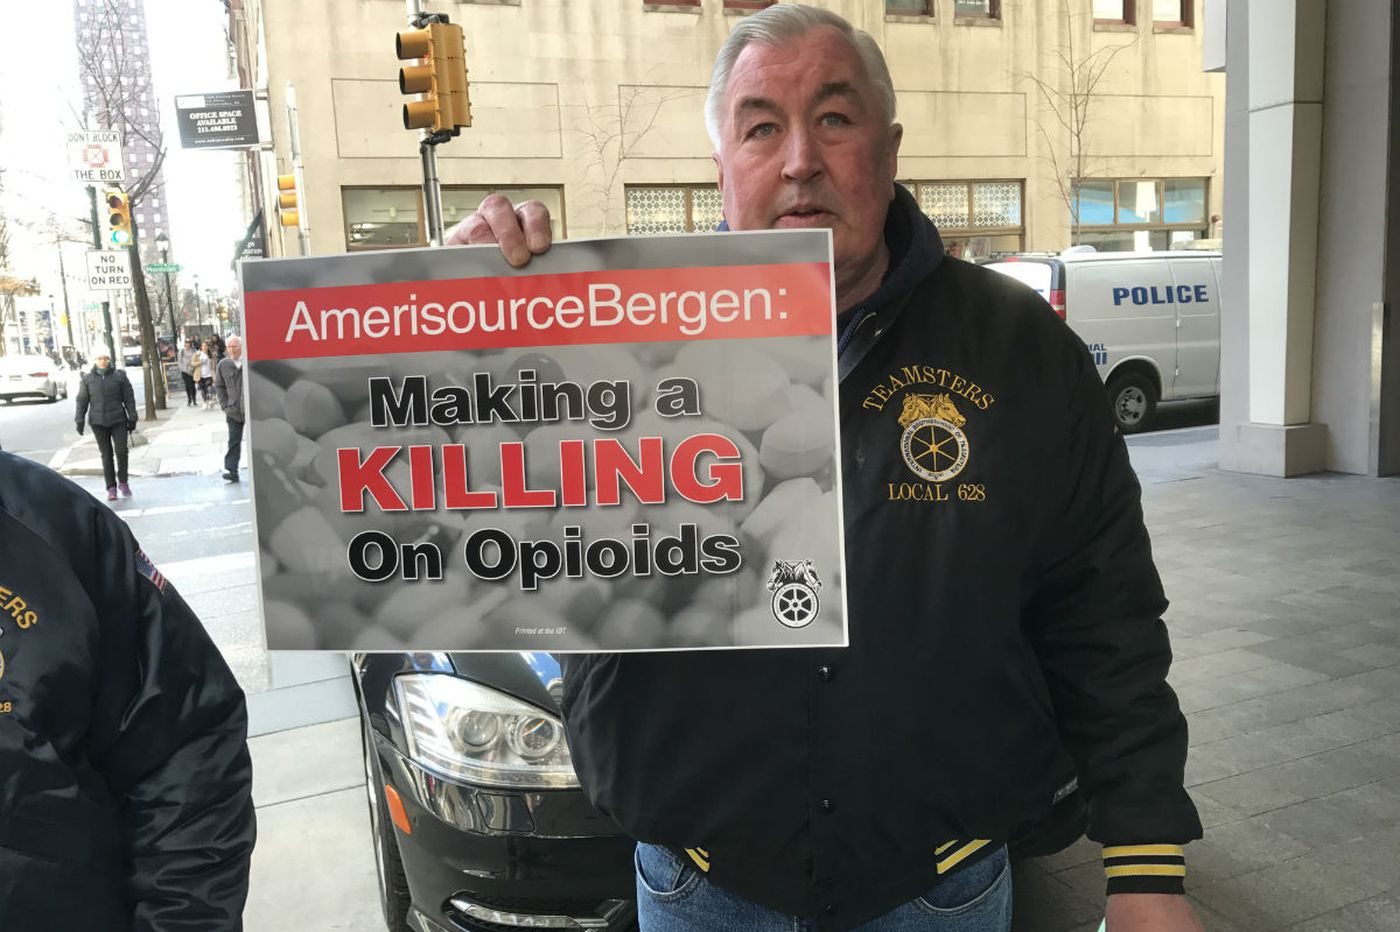 Nuns, Teamsters, city government and Vanguard all pressure AmerisourceBergen on opioids